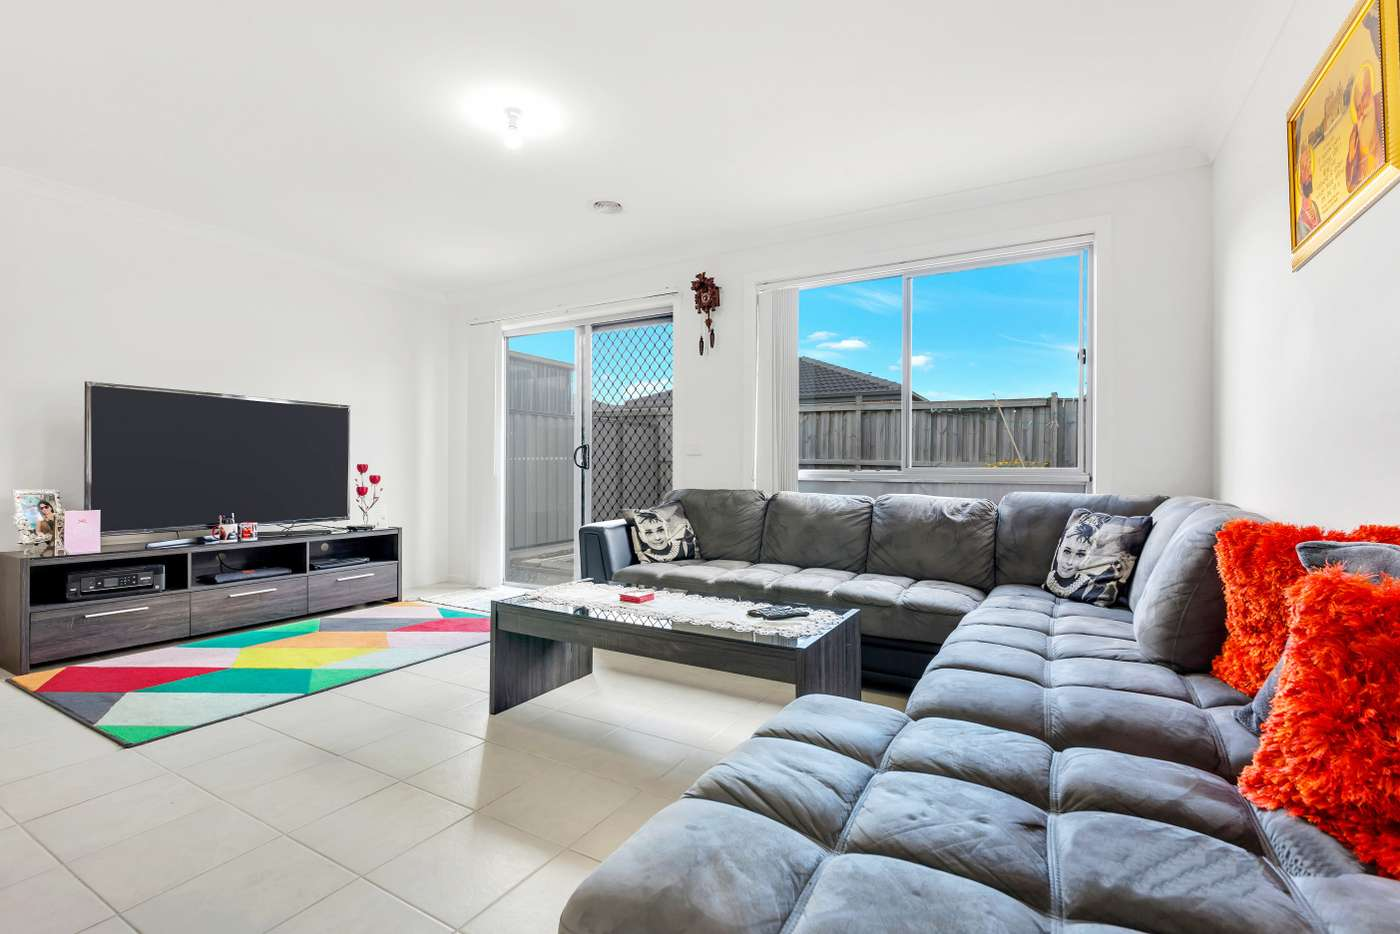 Main view of Homely house listing, 7A Maryann Way, Tarneit VIC 3029